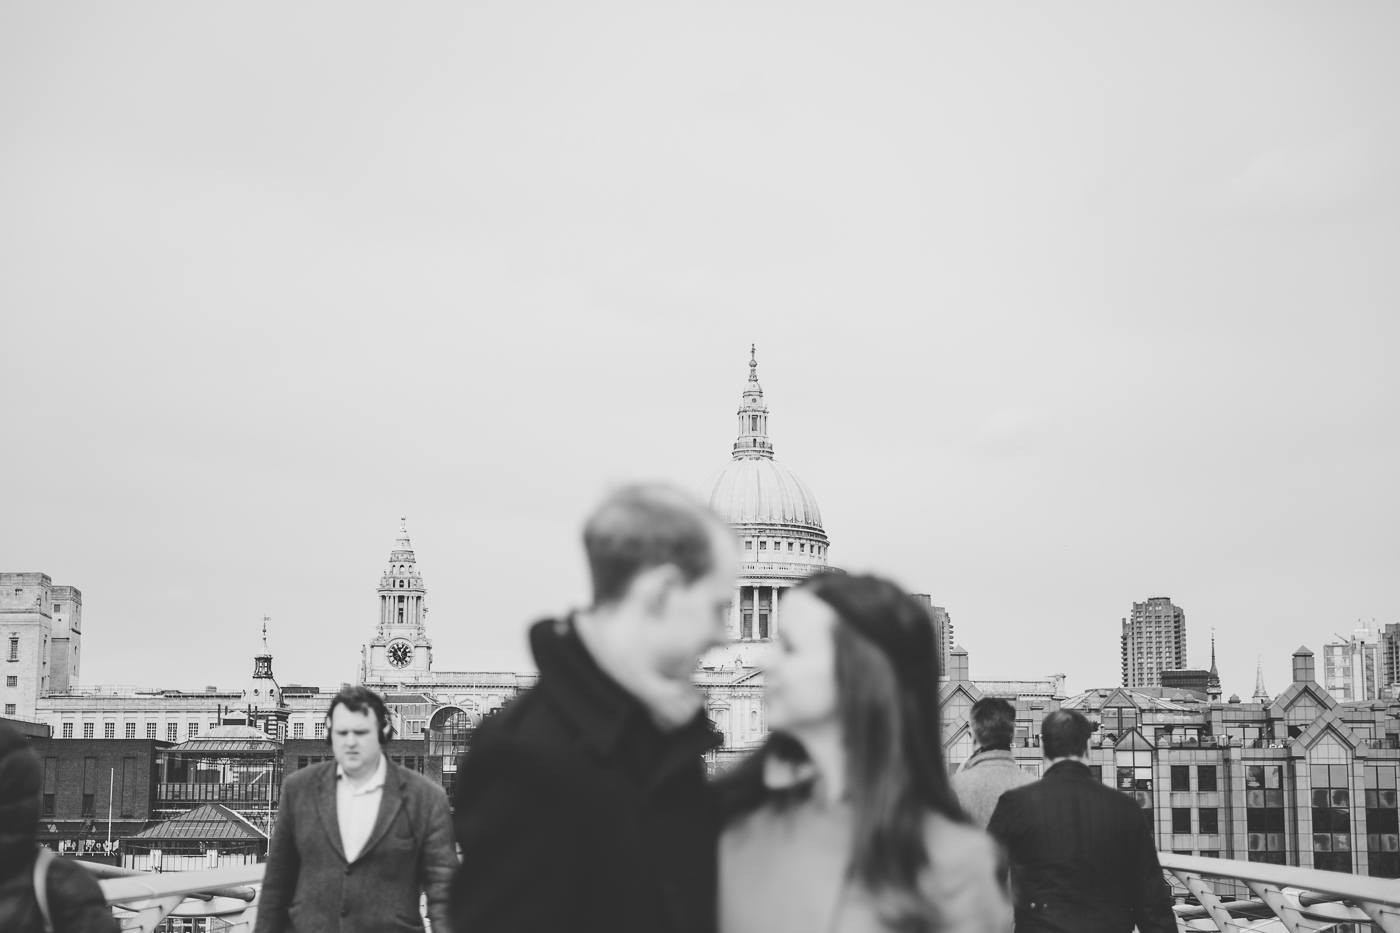 london-wedding-photographer-kate-gray-23.jpg